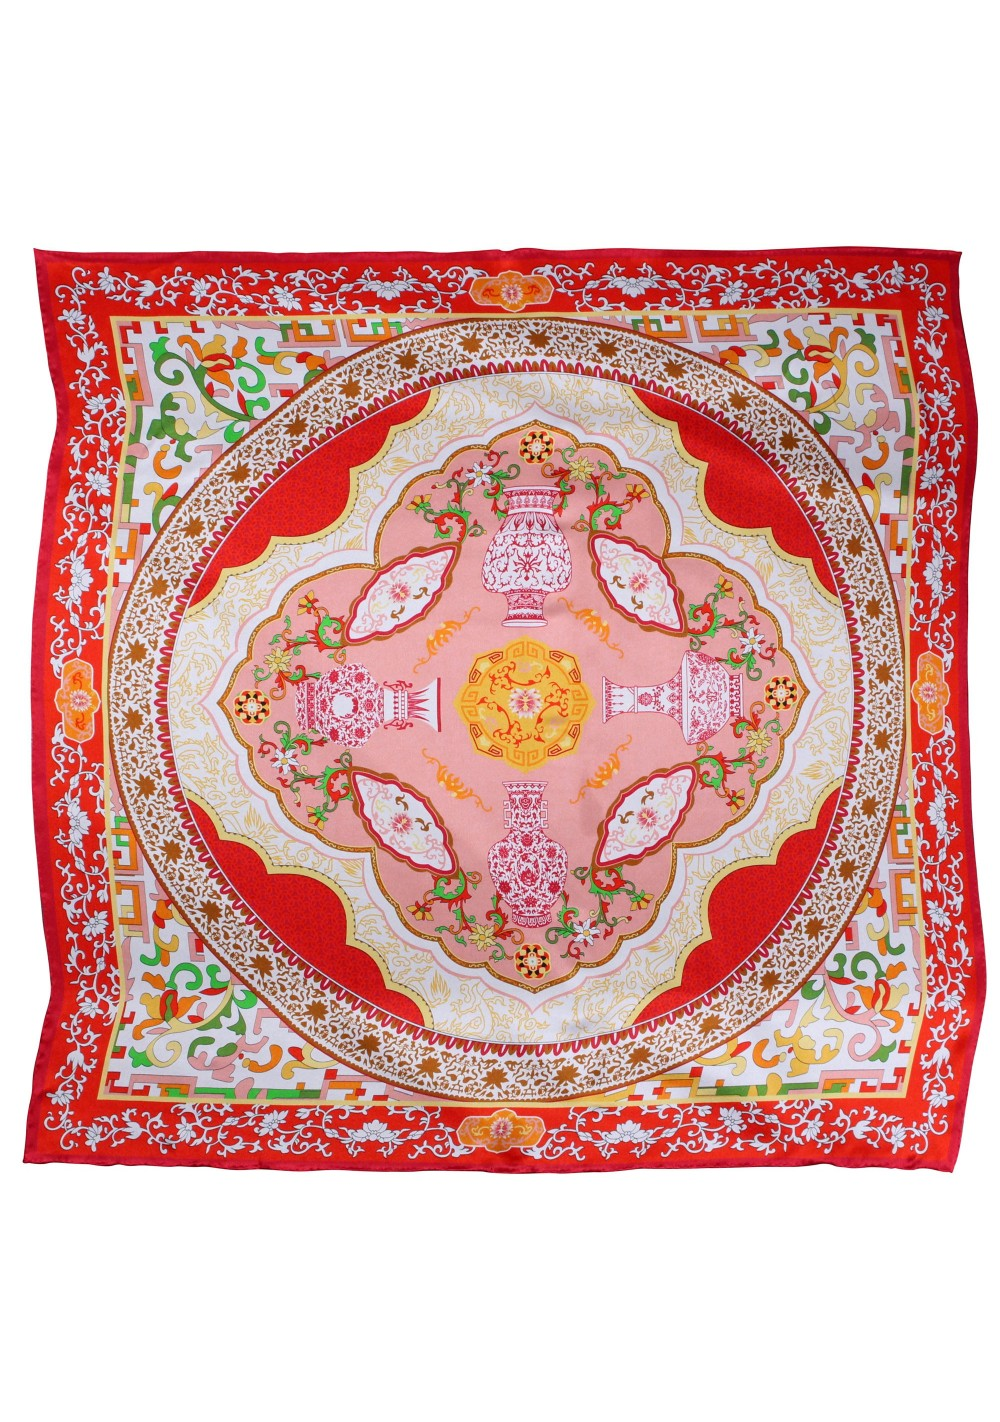 Persian Print Designer Scarf in Bright Red, Cherry, and Gold